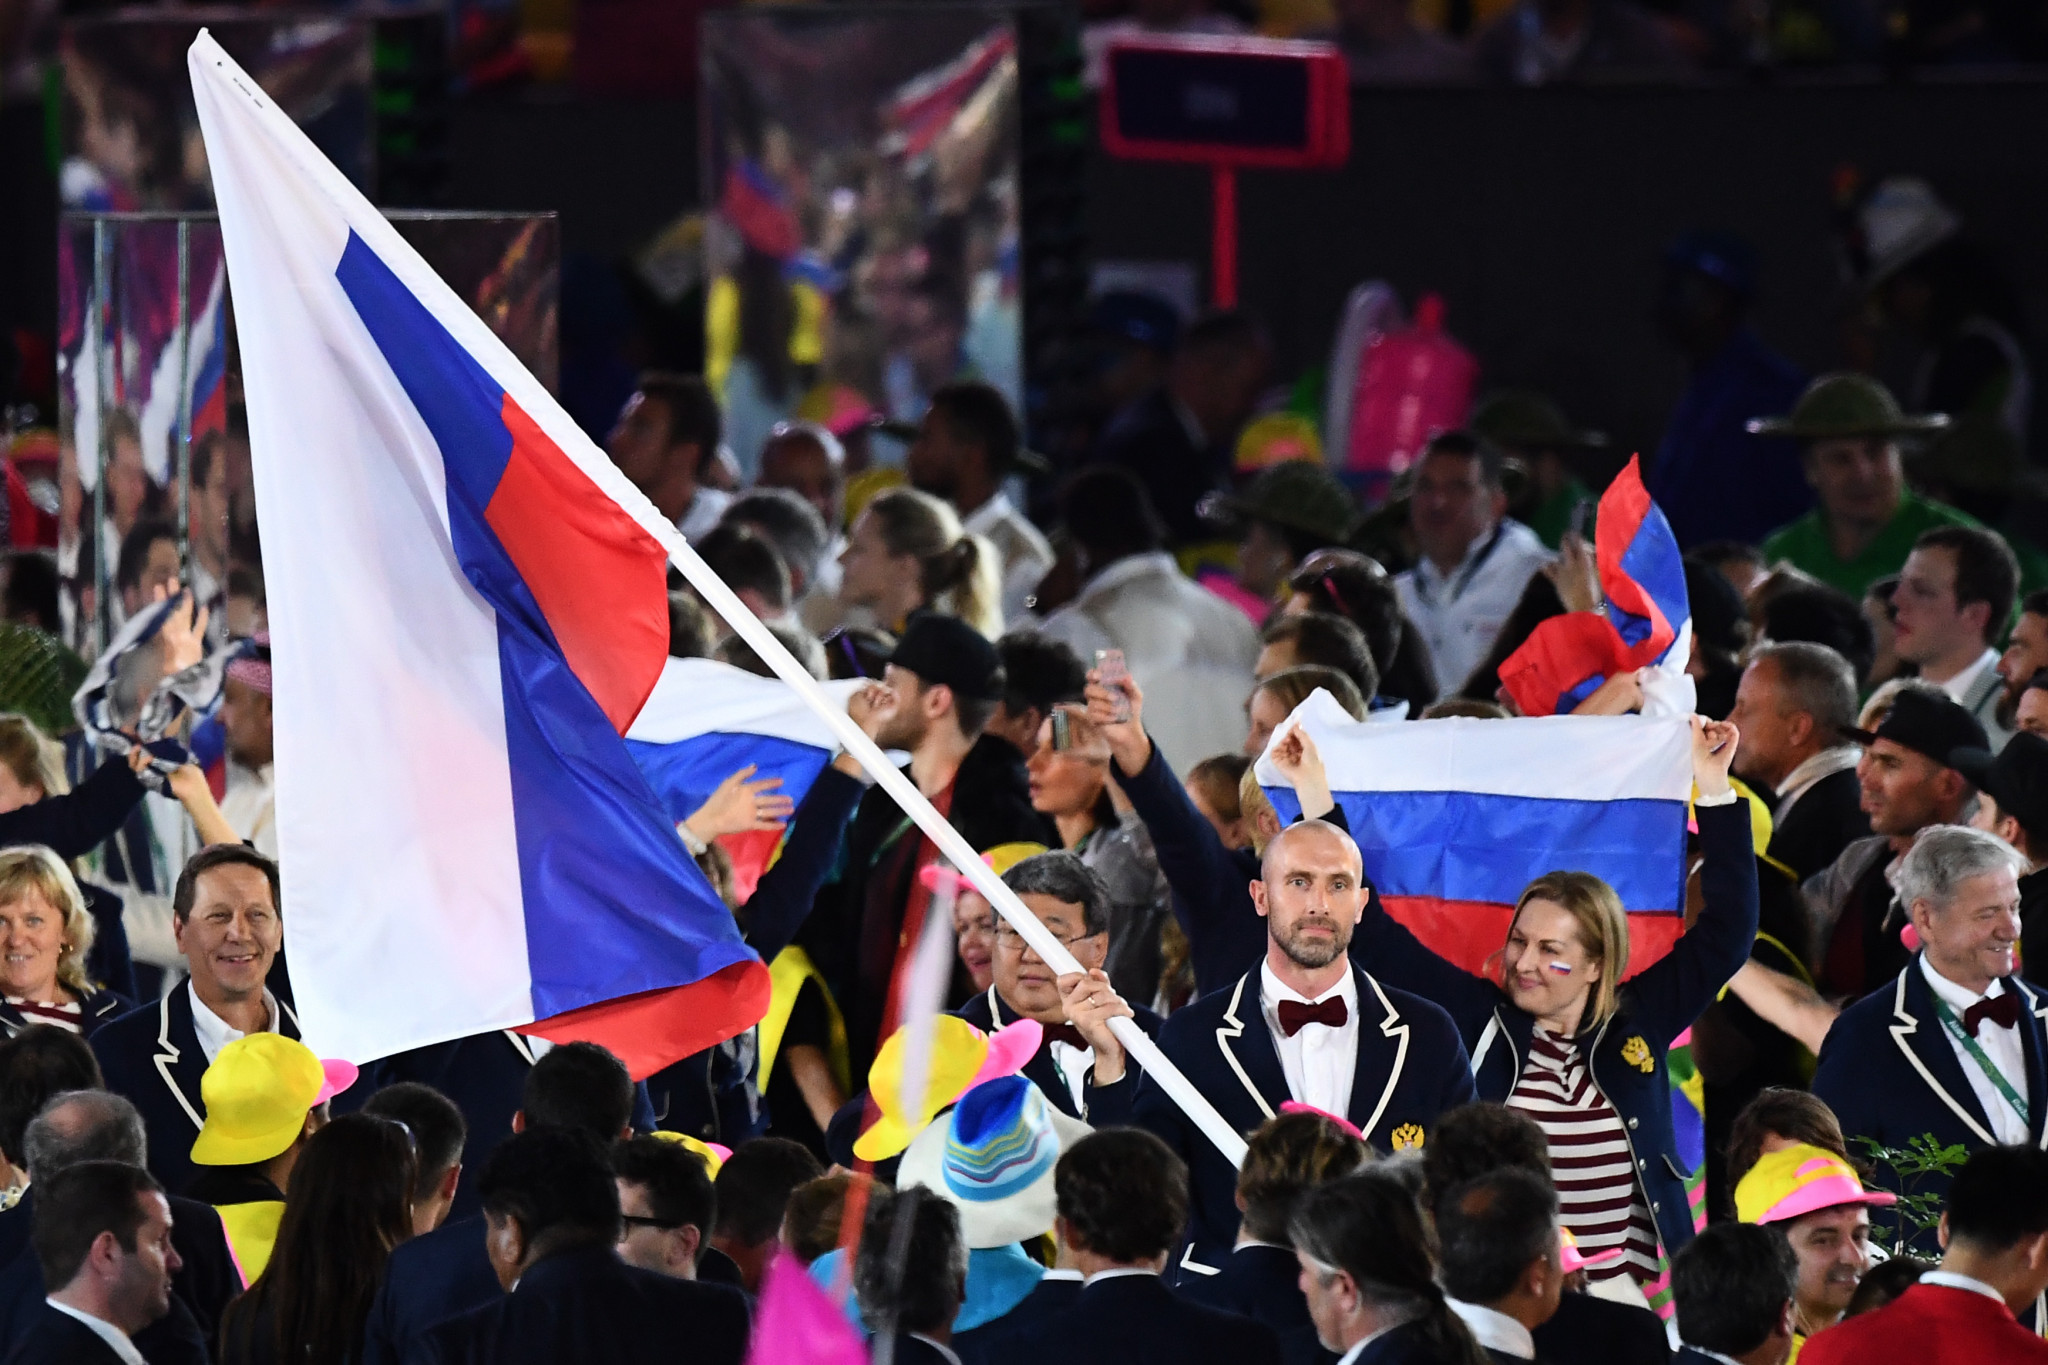 The Russian flag could be banned from appearing at the Olympic Games ©Getty Images